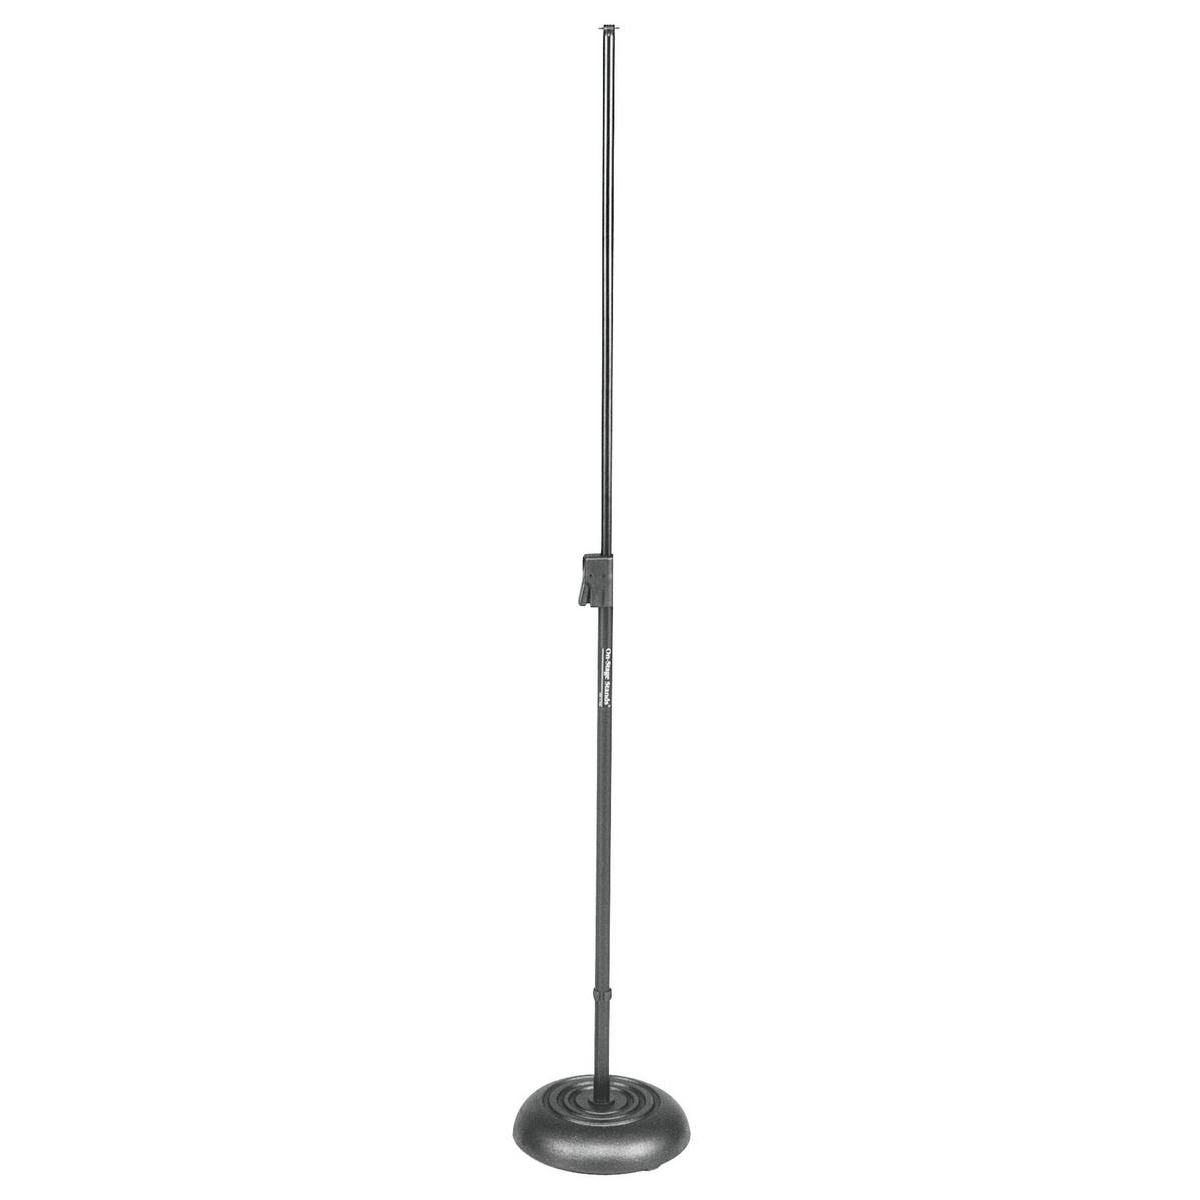 Round Base Stands